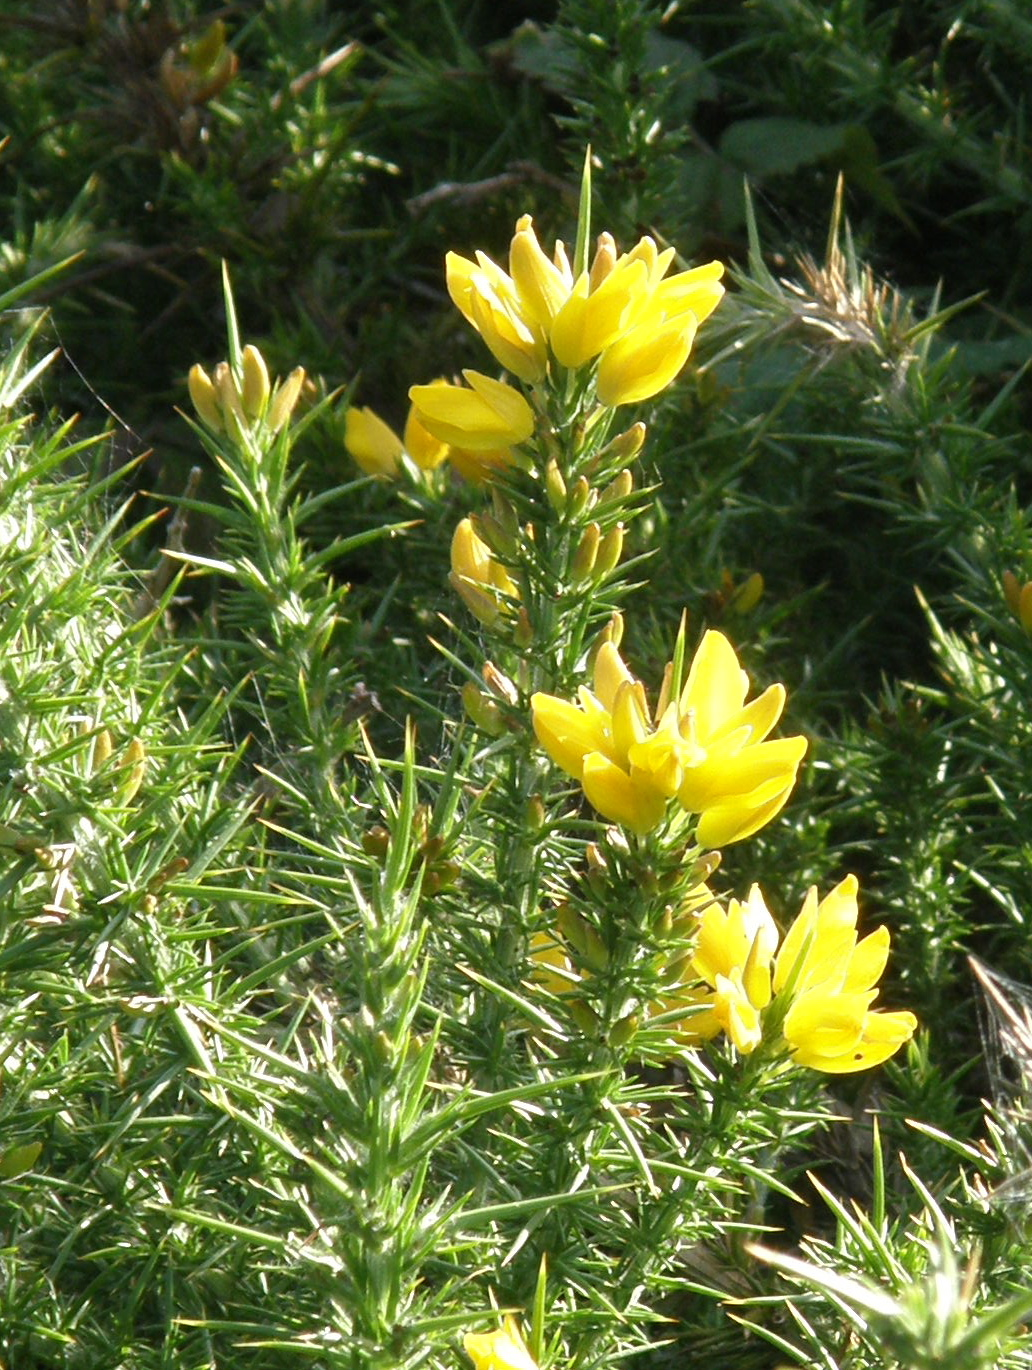 European Gorse (also called Furze or Whin)